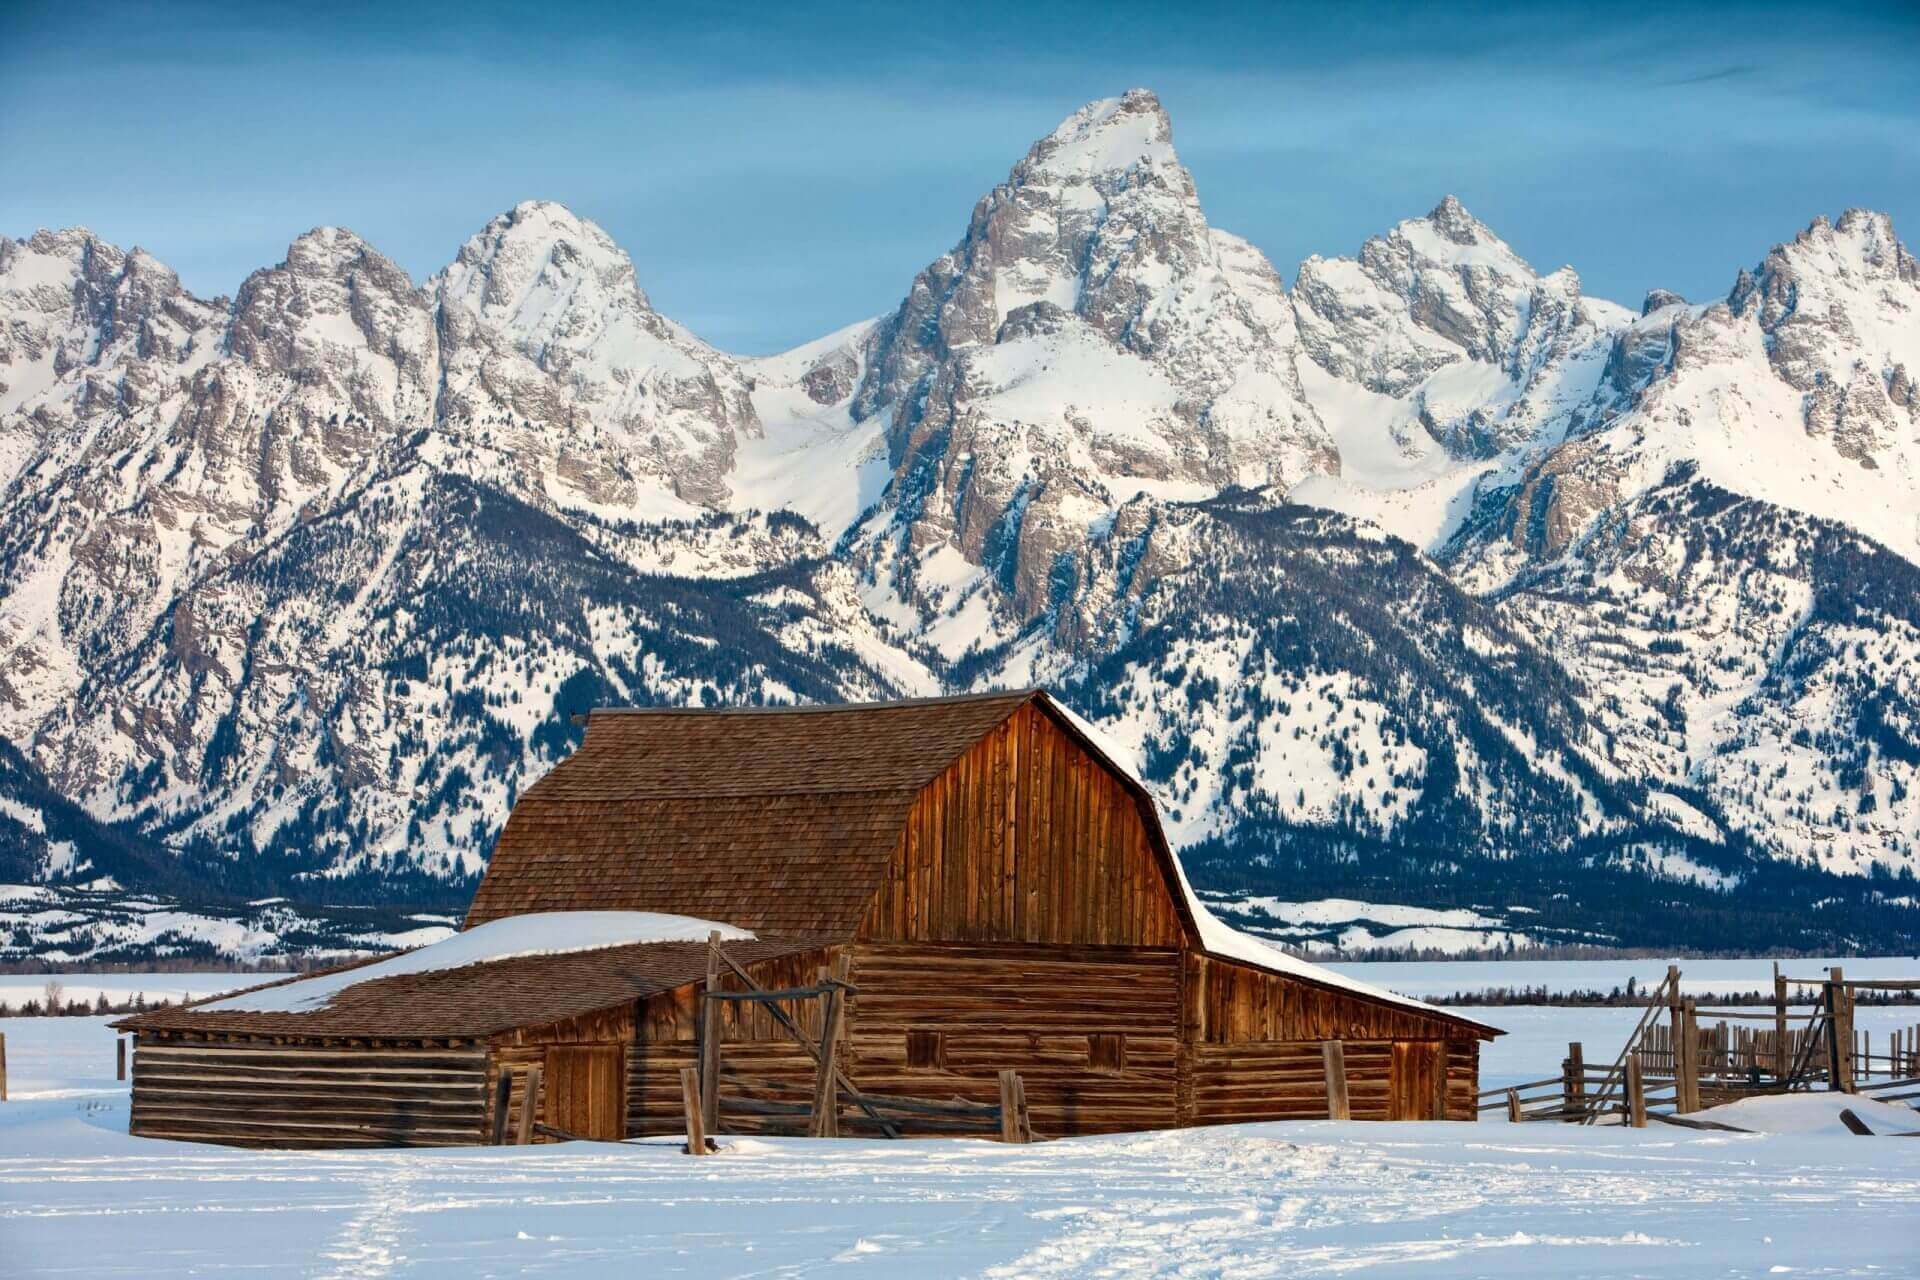 Wooden barn in winter with moutain backdrop